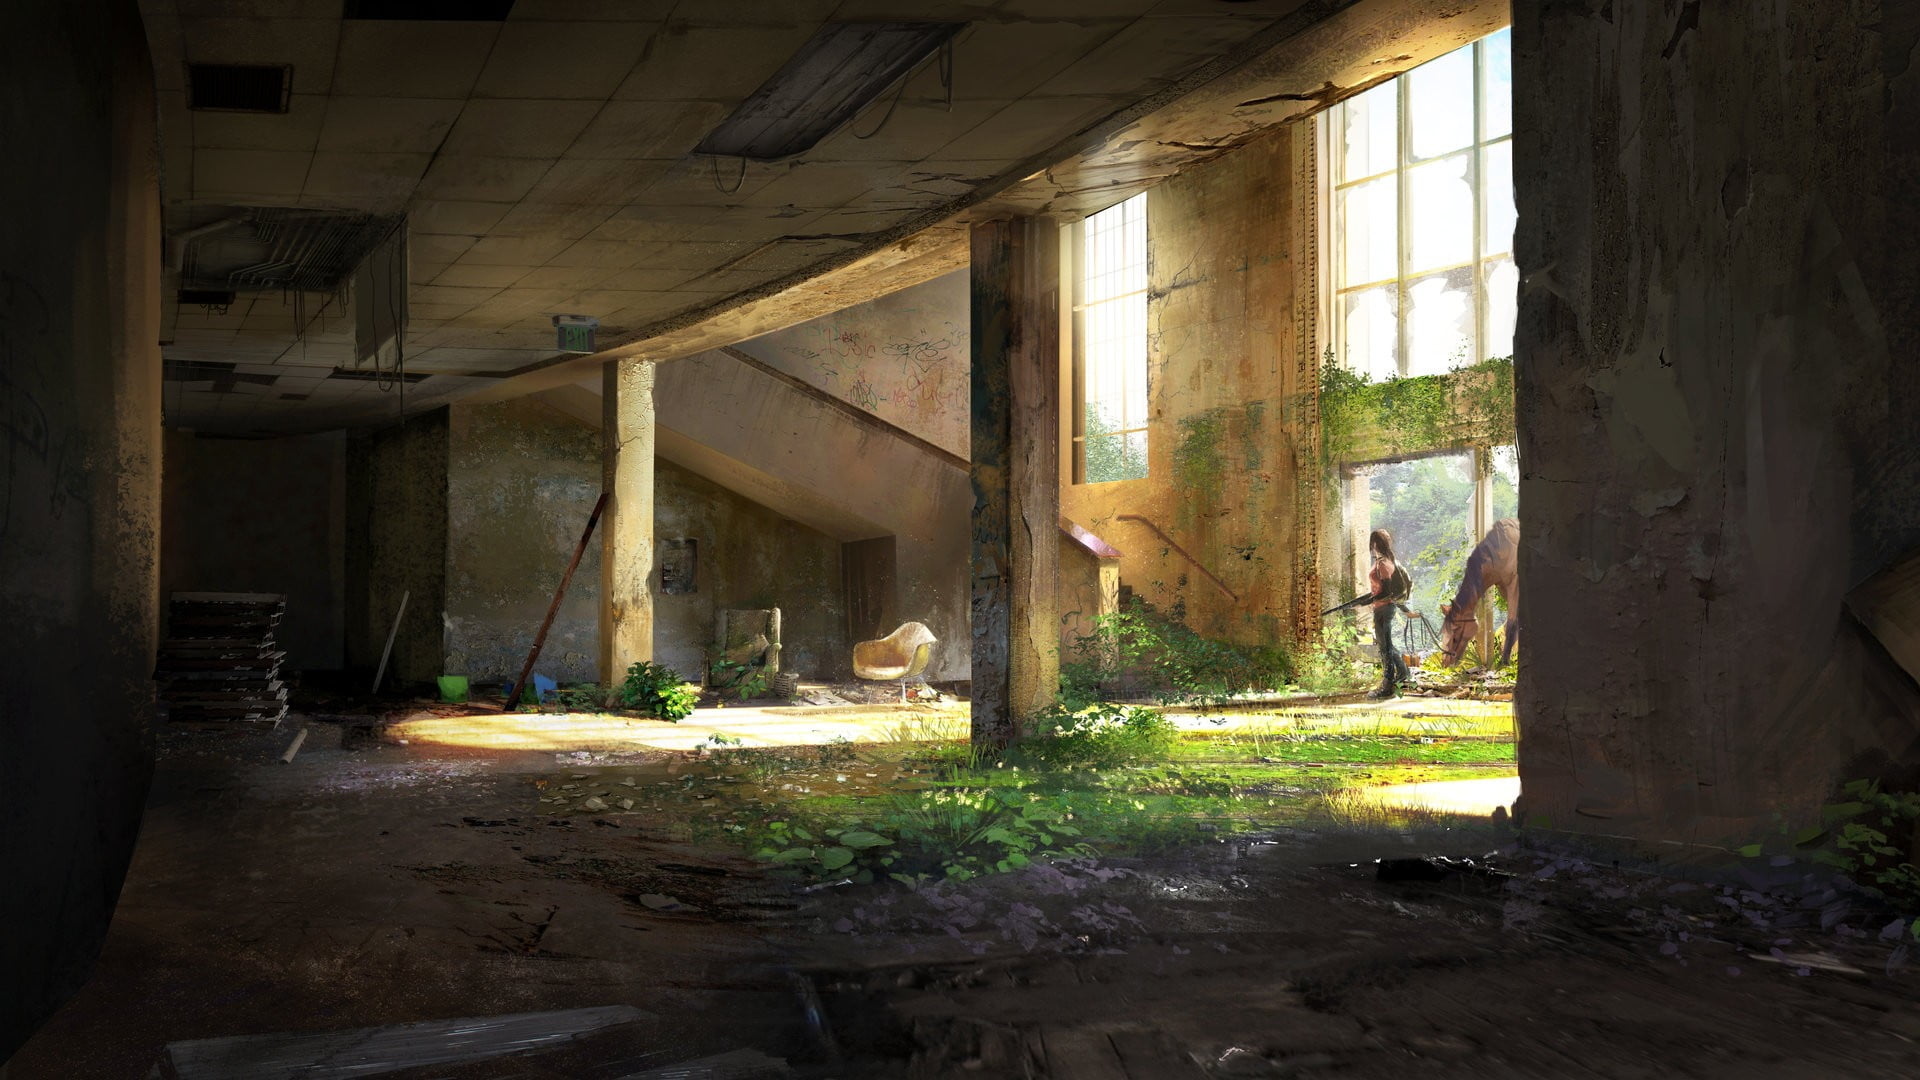 Abandoned building during daytime HD wallpaper | Wallpaper Flare